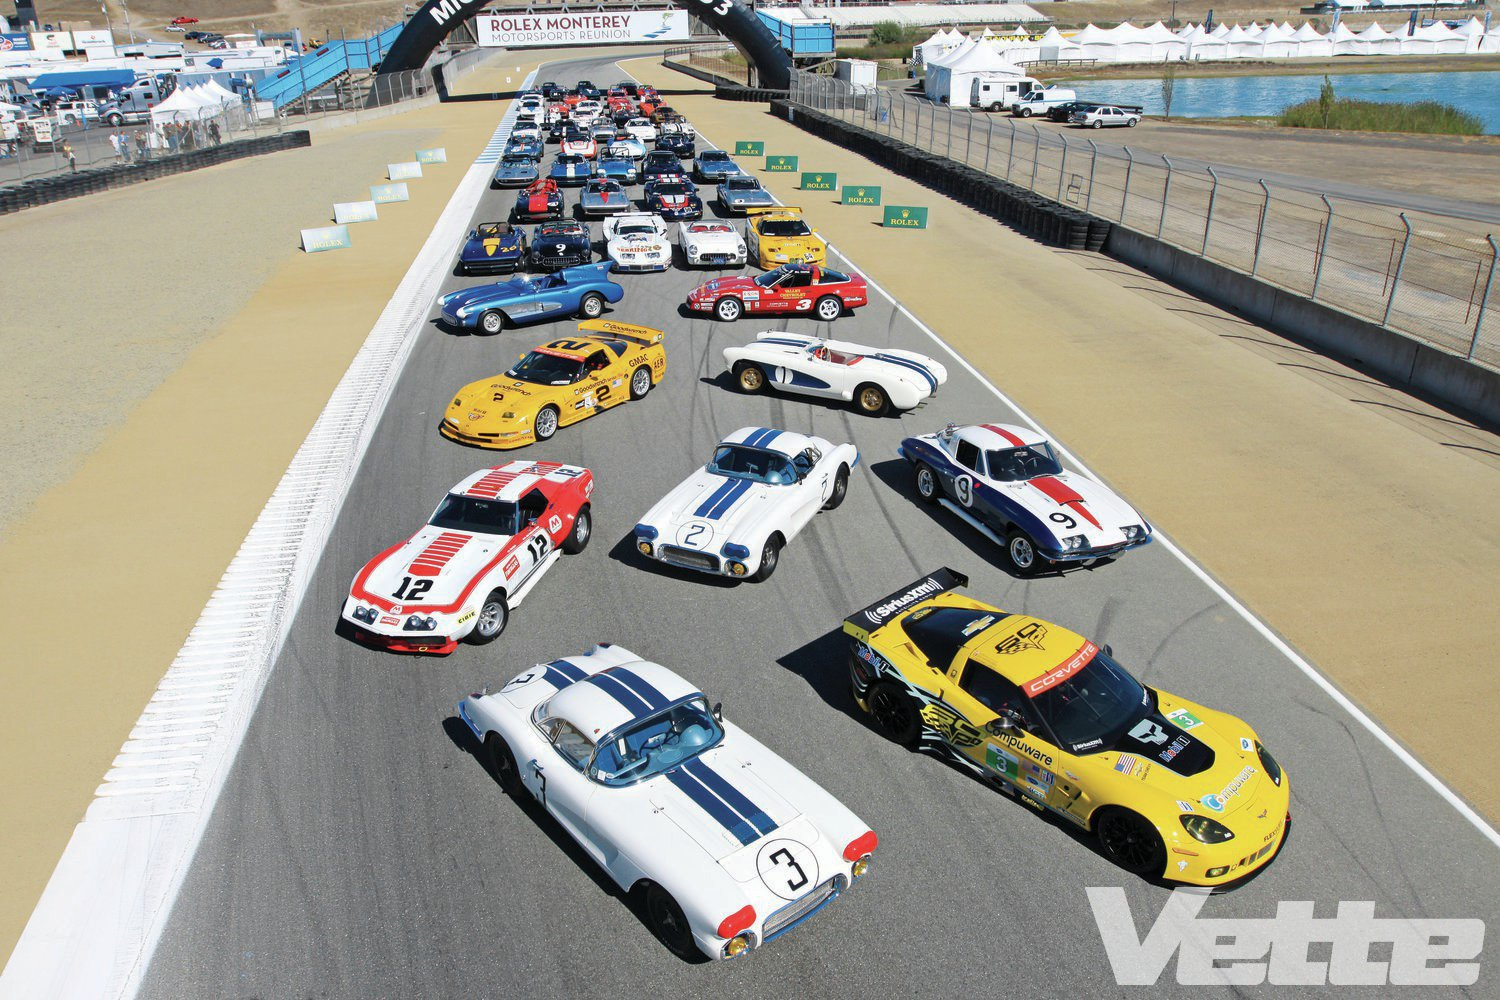 2013 Rolex Monterey Motorsports Reunion - Time Machines